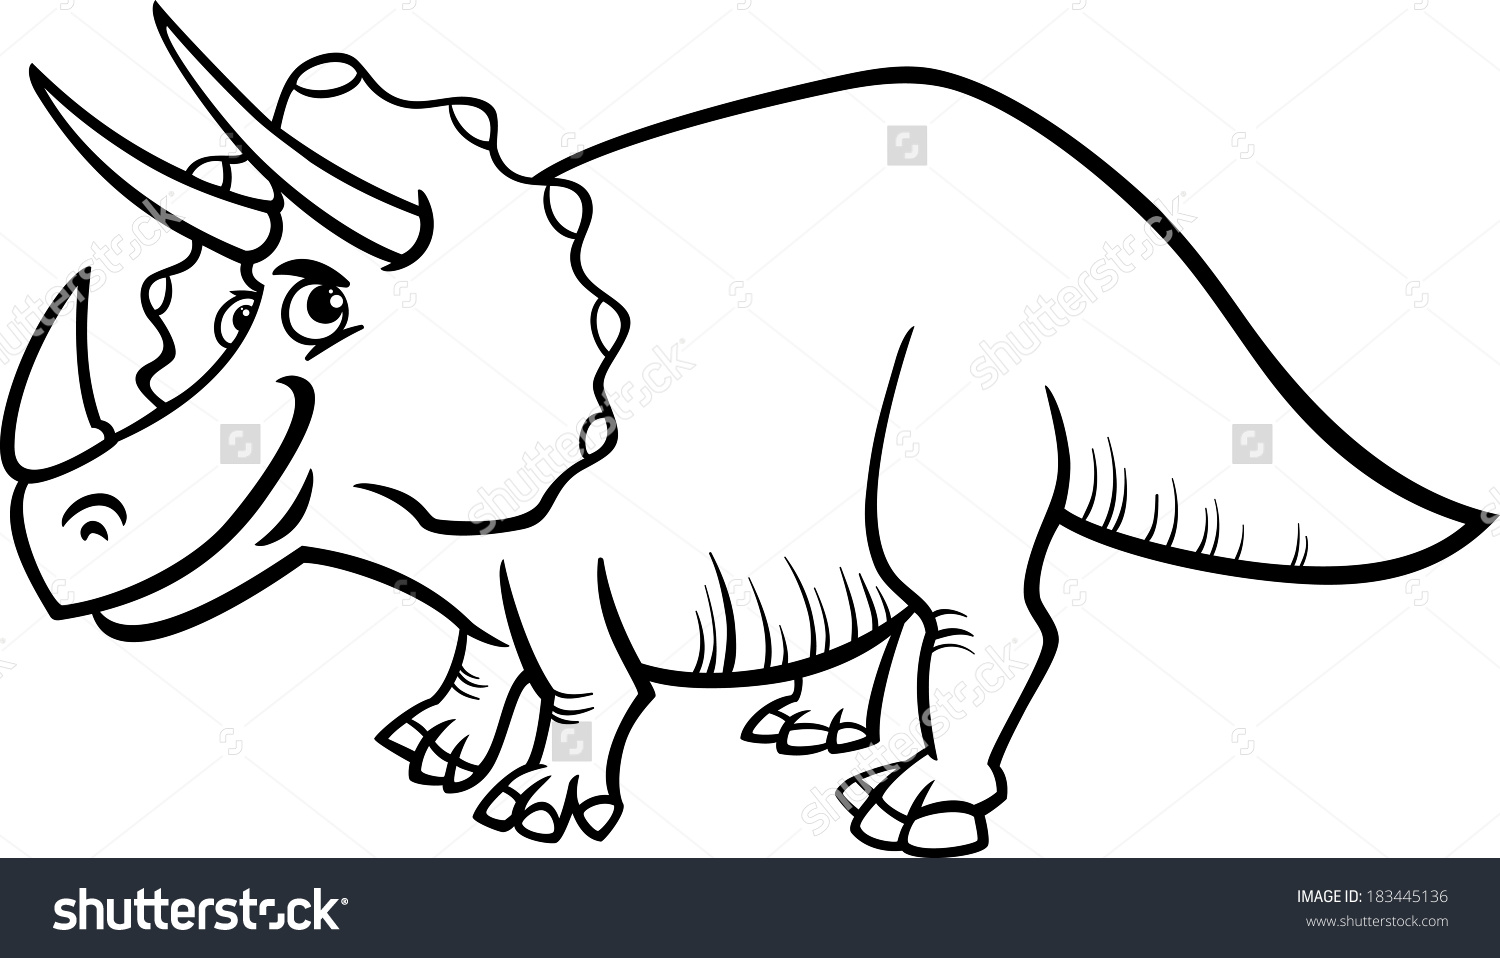 1500x958 Triceratops Clipart Dinosaur Outline